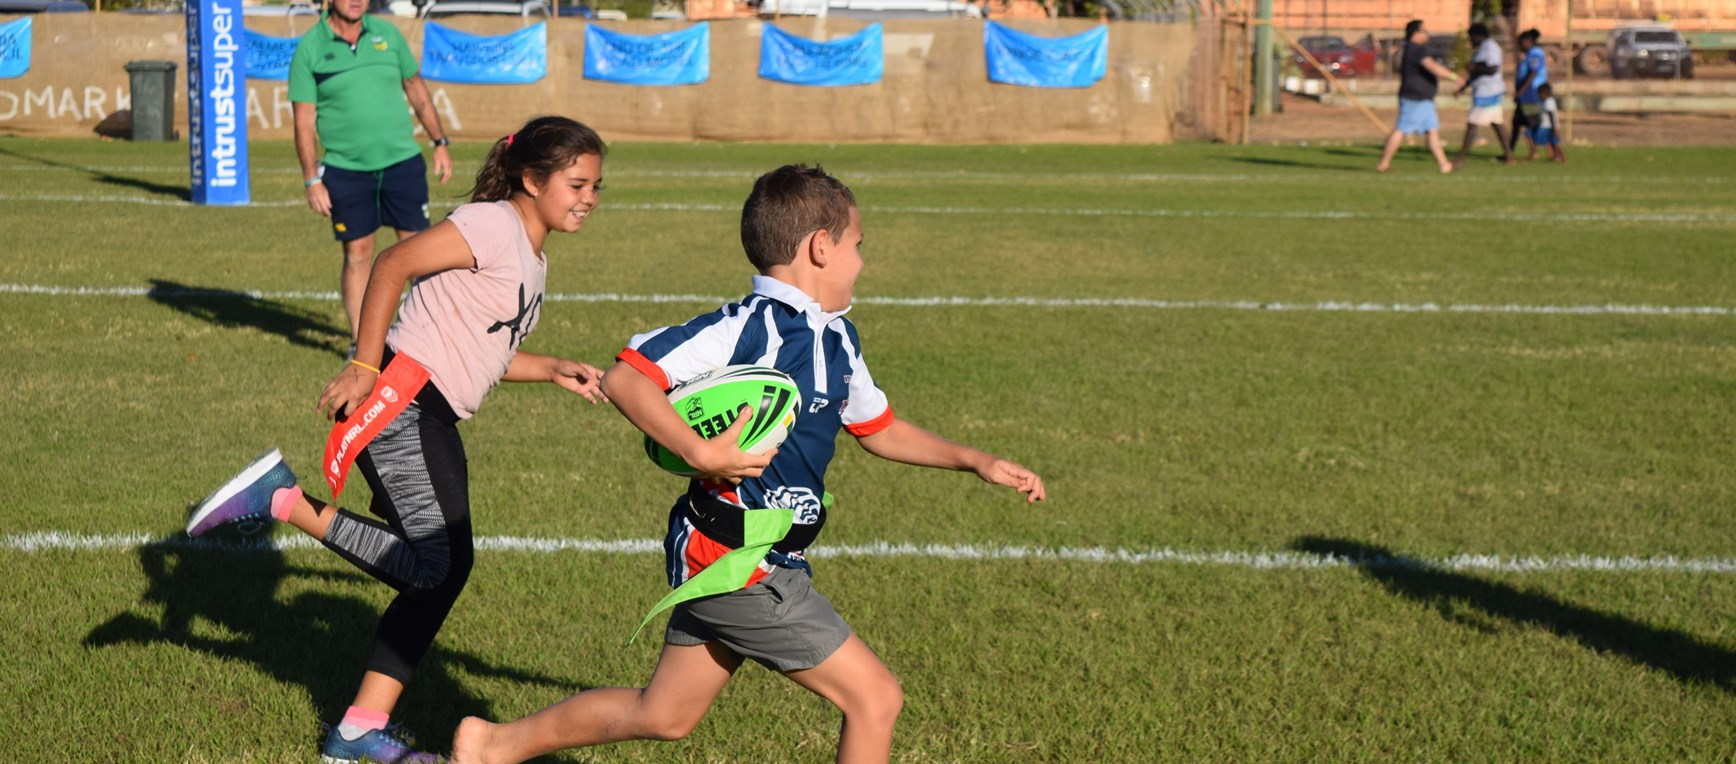 Gallery: Girls join boys for LeagueTag in Normanton